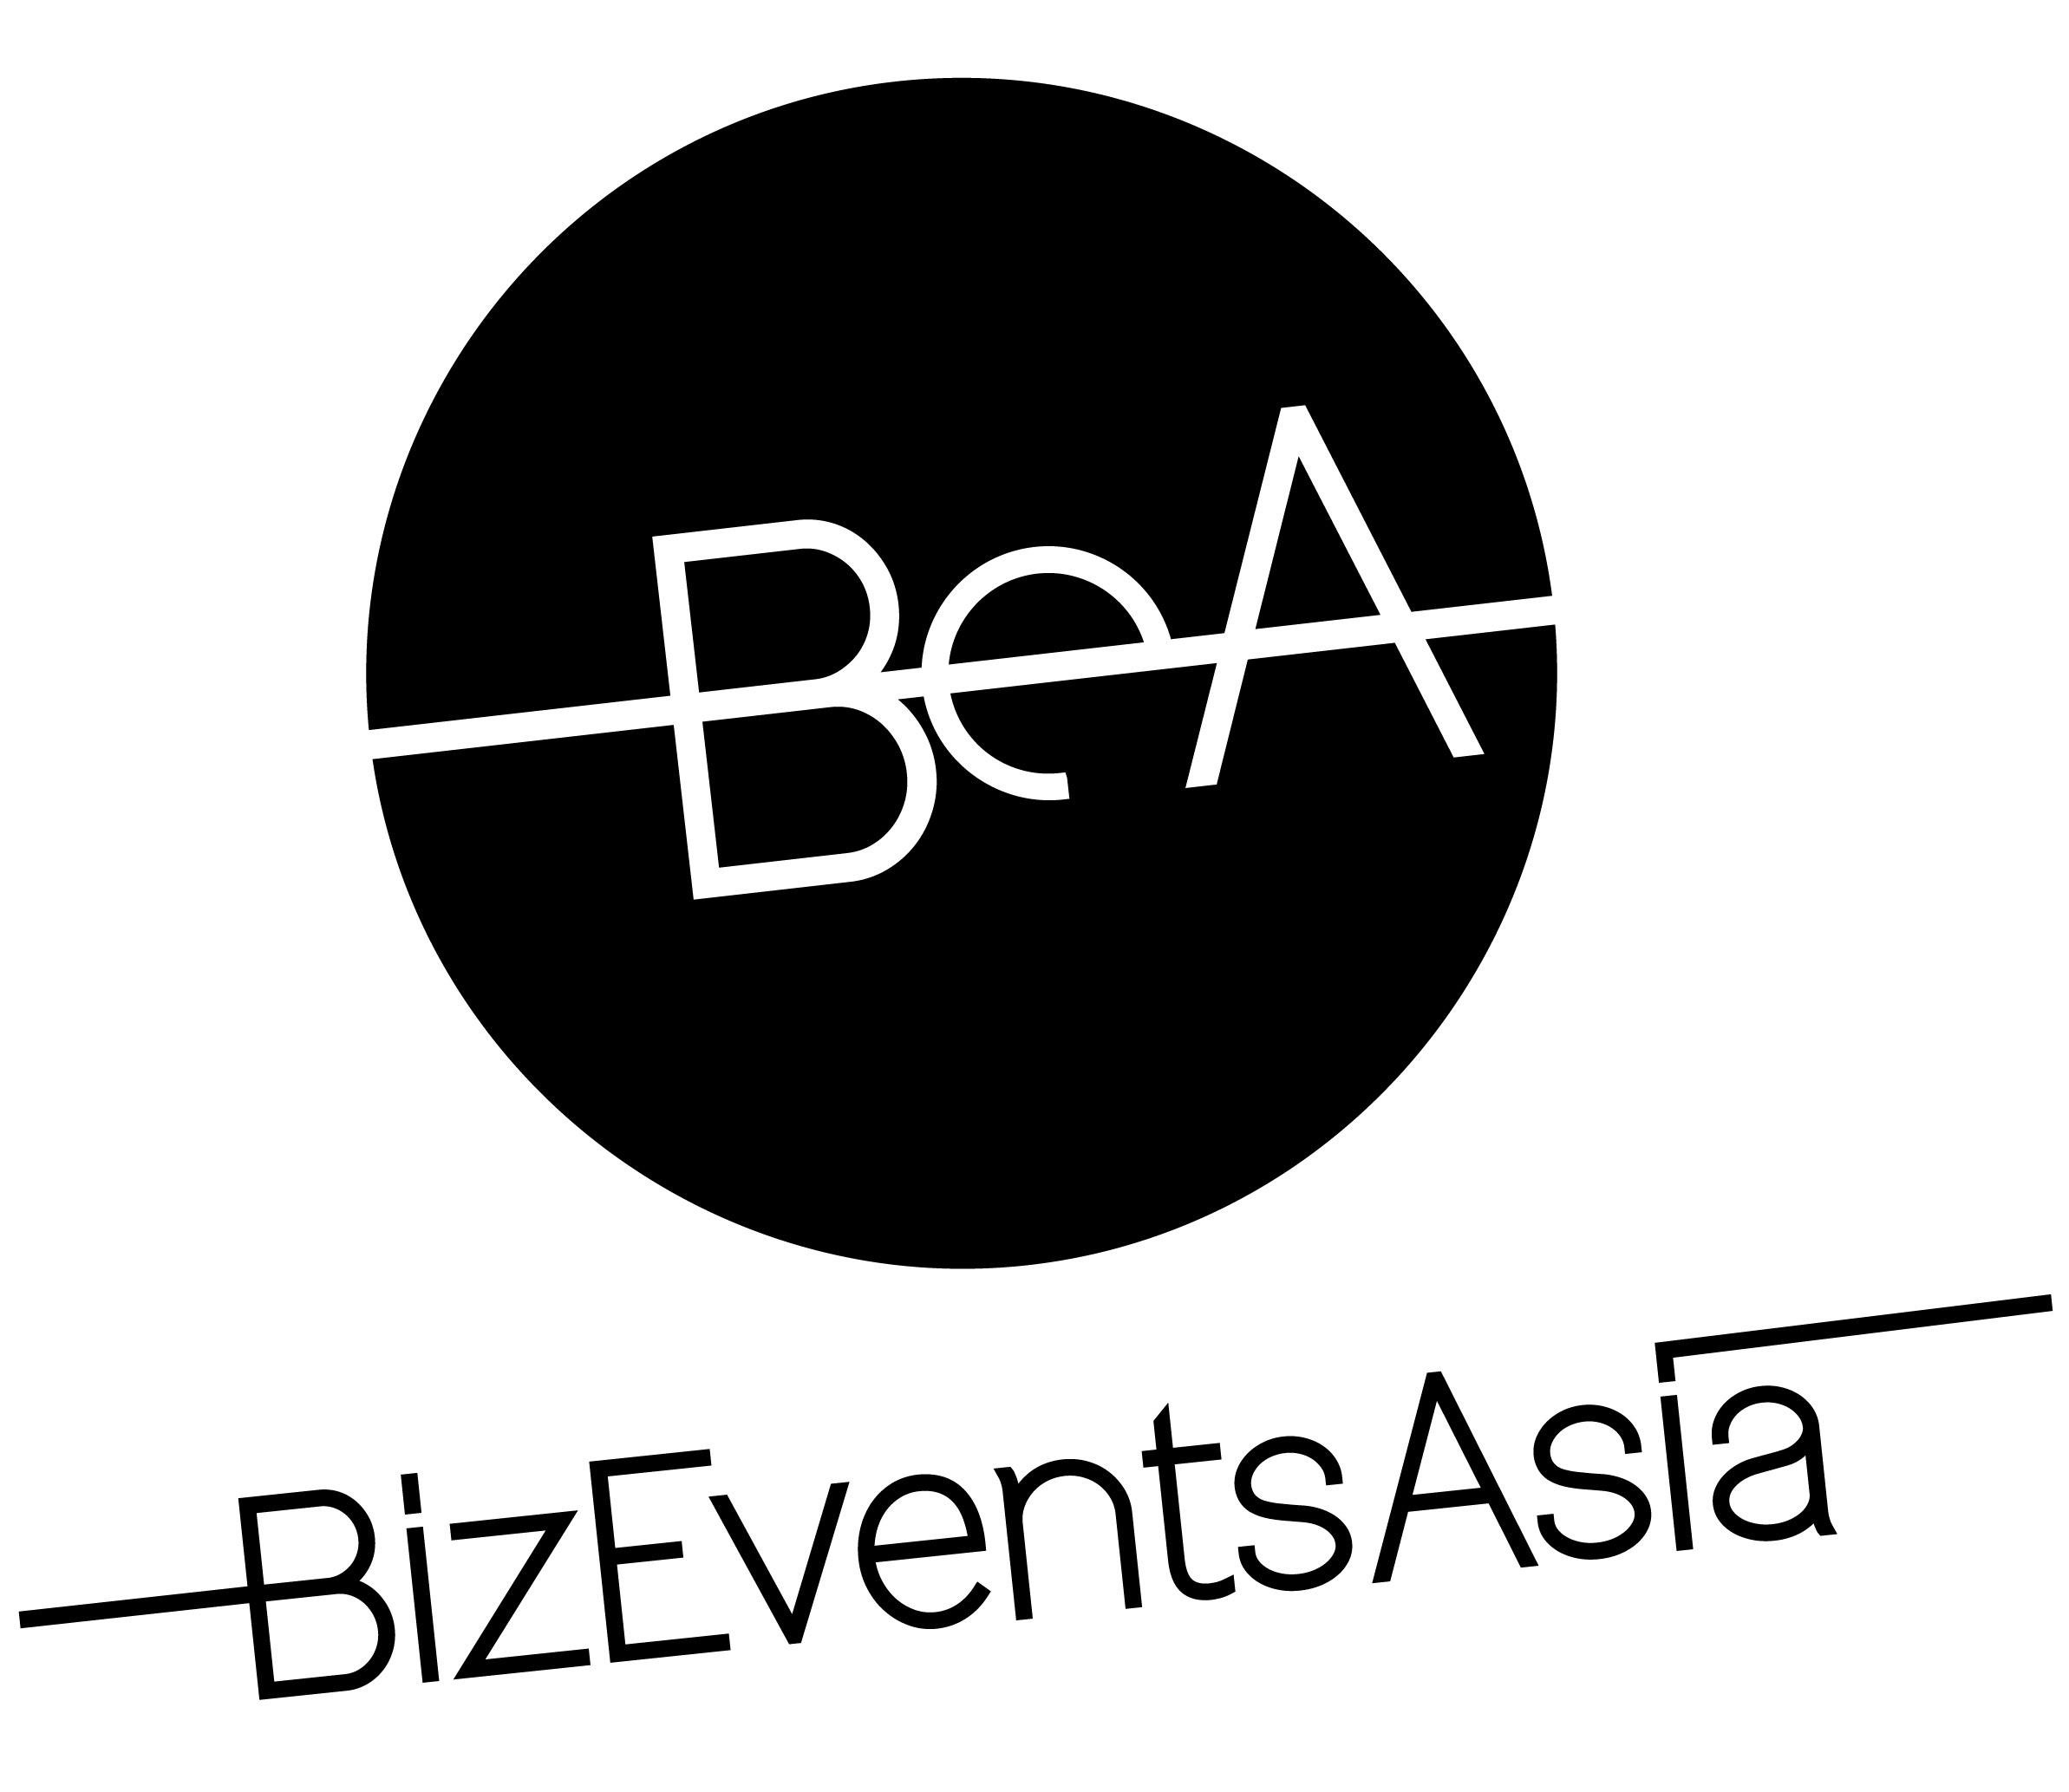 Biz Events Asia - Logo Black